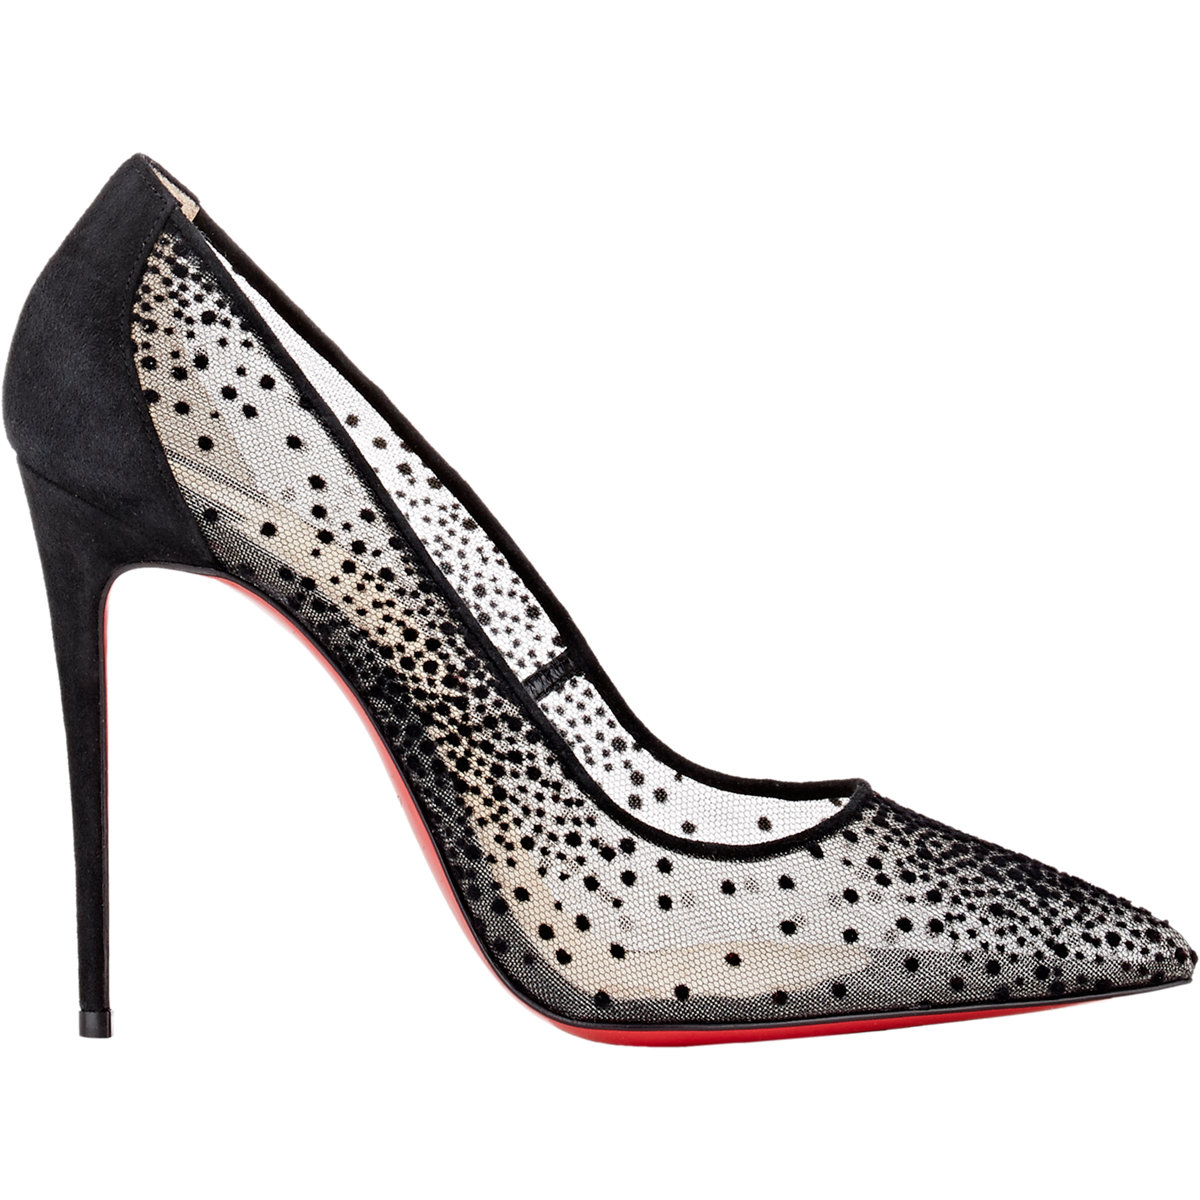 timeless design b9ad1 c58ef Christian Louboutin Follies Lace and Chiffon Pumps in Black ...